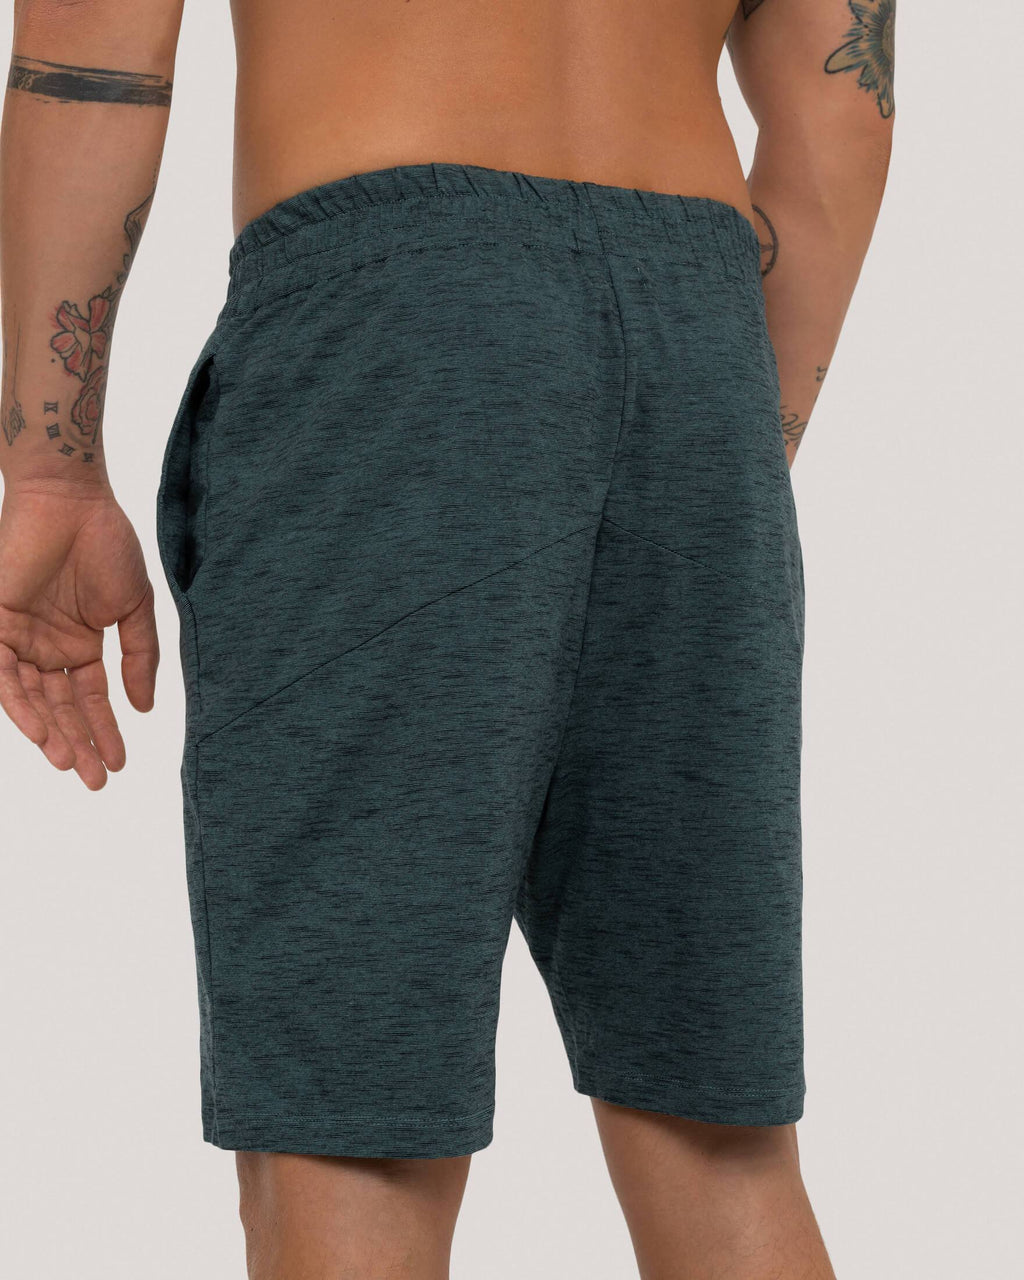 variant_1 | EN Green Yoga Sport Shorts Men | DE Grüne Loungewear Yoga Sport Shorts Herren